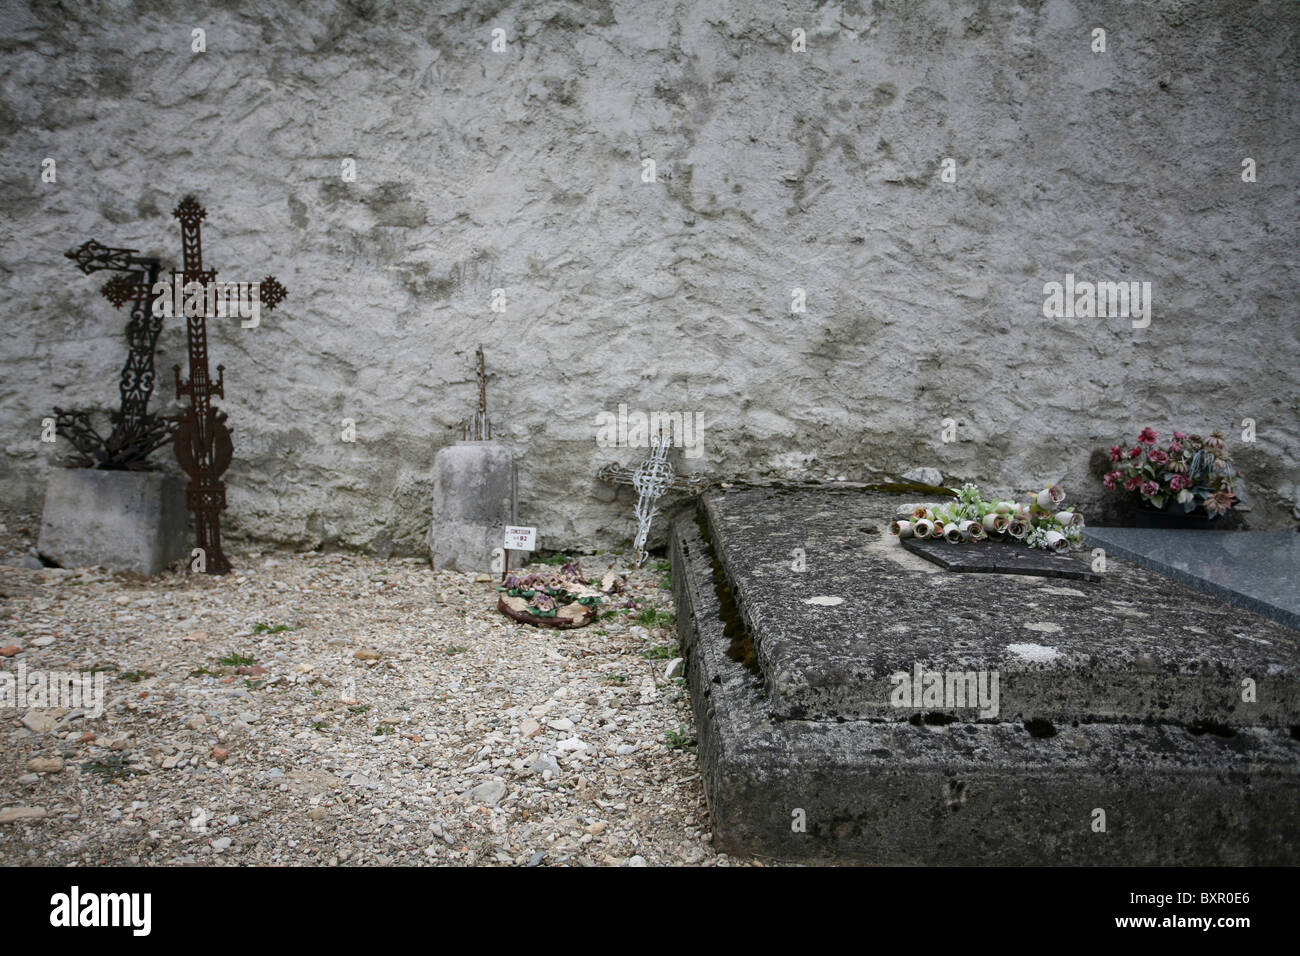 Grave sites with abandoned headstones and crosses leaning against a wall in Cimetière de Die, France - Stock Image